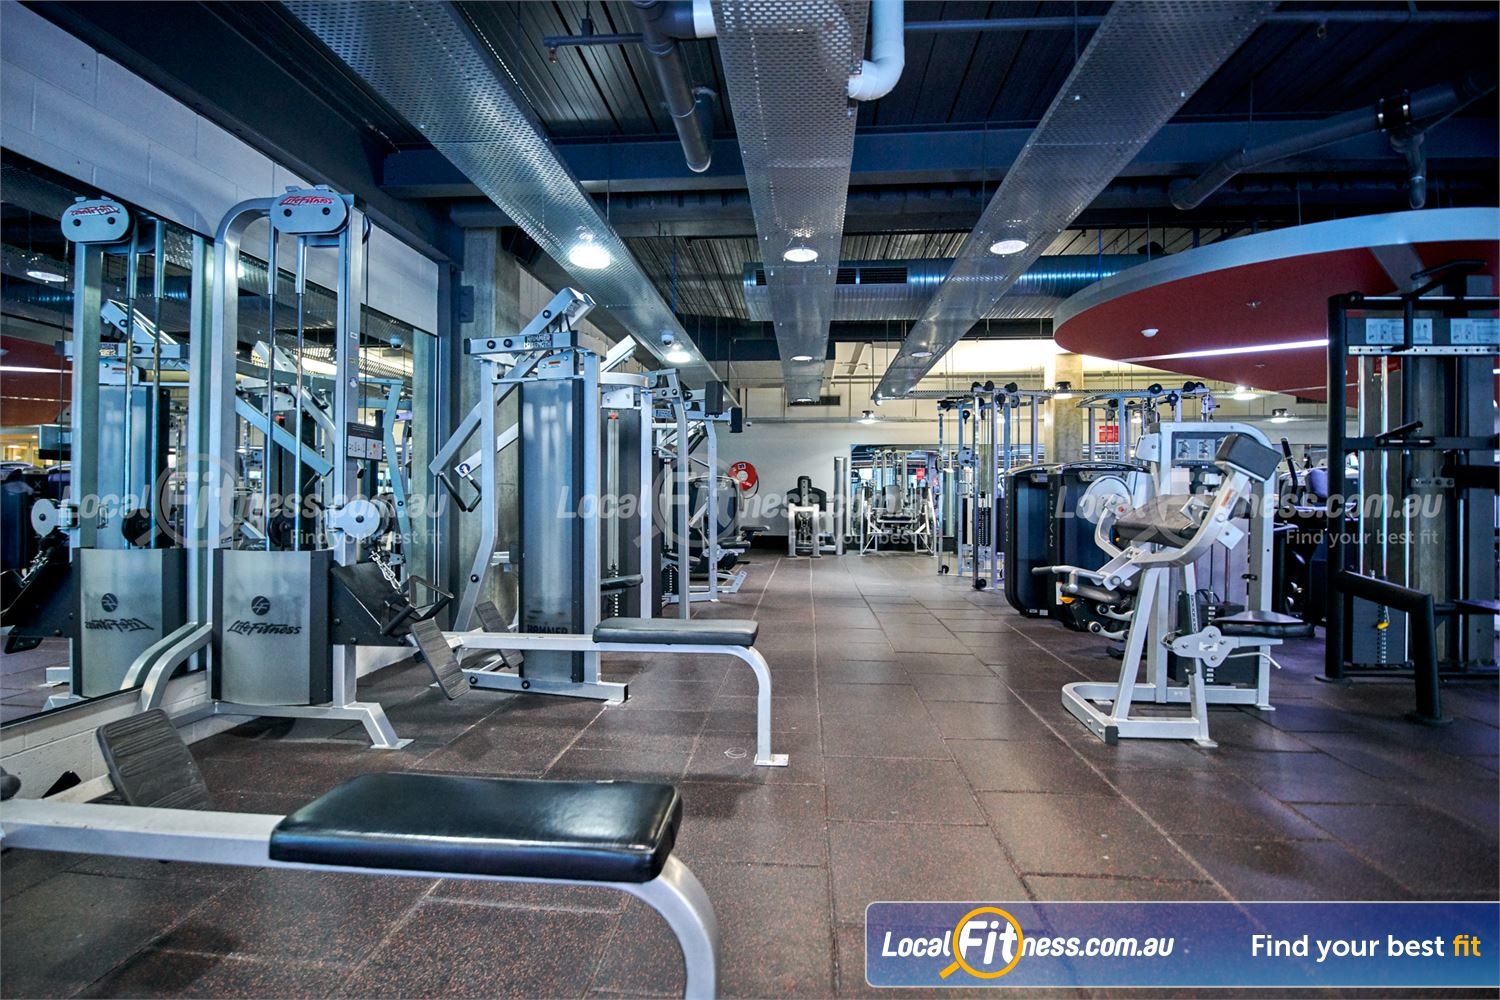 Fitness First Victoria Gardens Richmond Our Richmond gym includes state of the art equipment from Life Fitness.